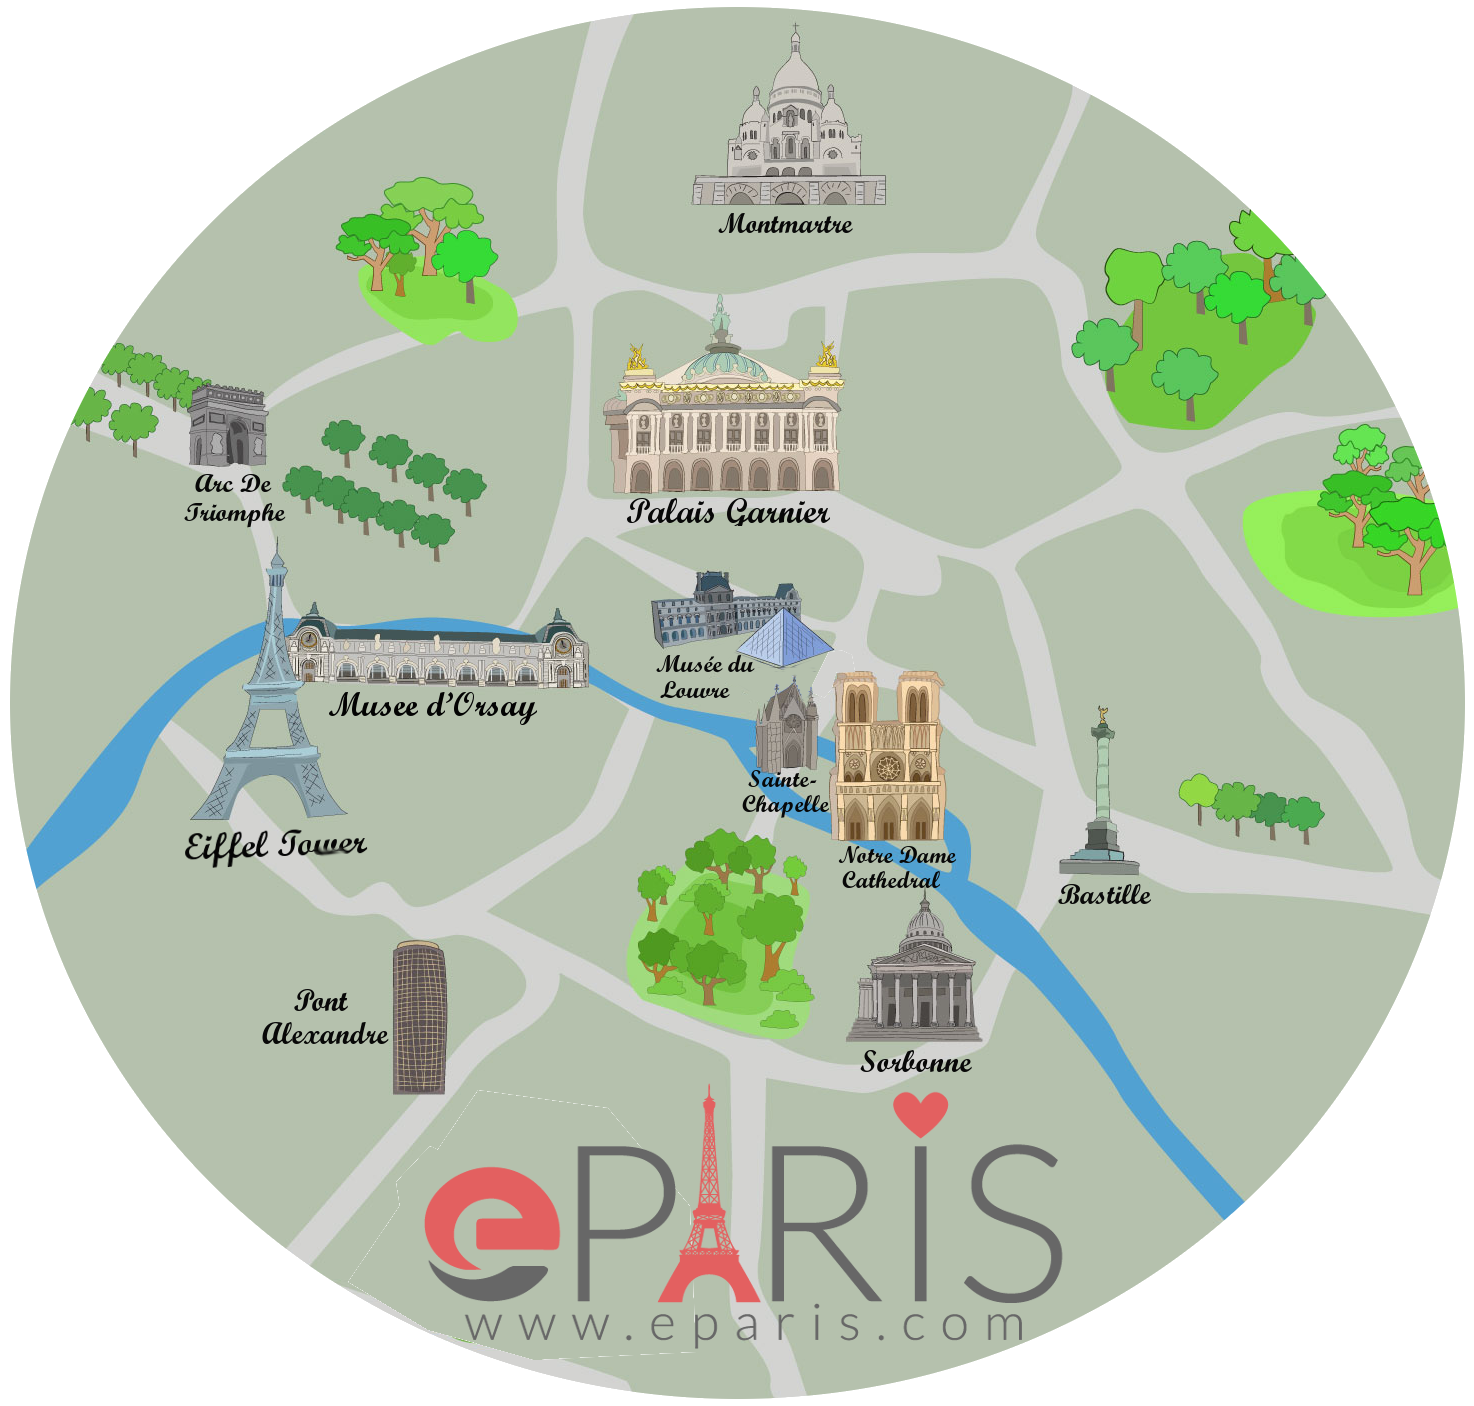 Paris Map of Attractions